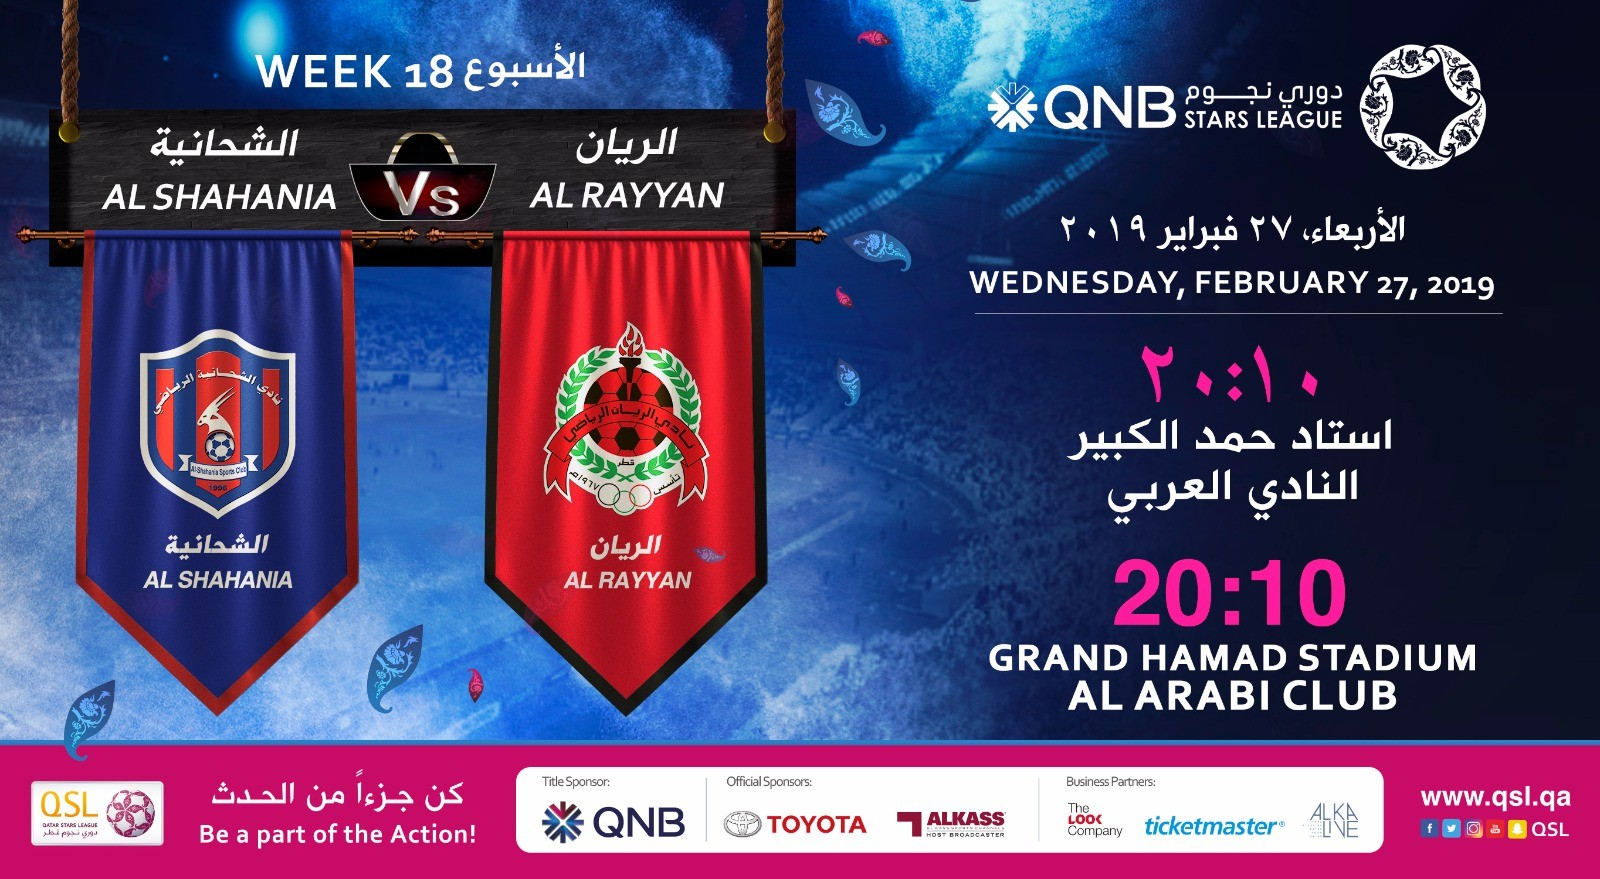 QNB Stars League Week 18 — Al Shahania vs Al Rayyan